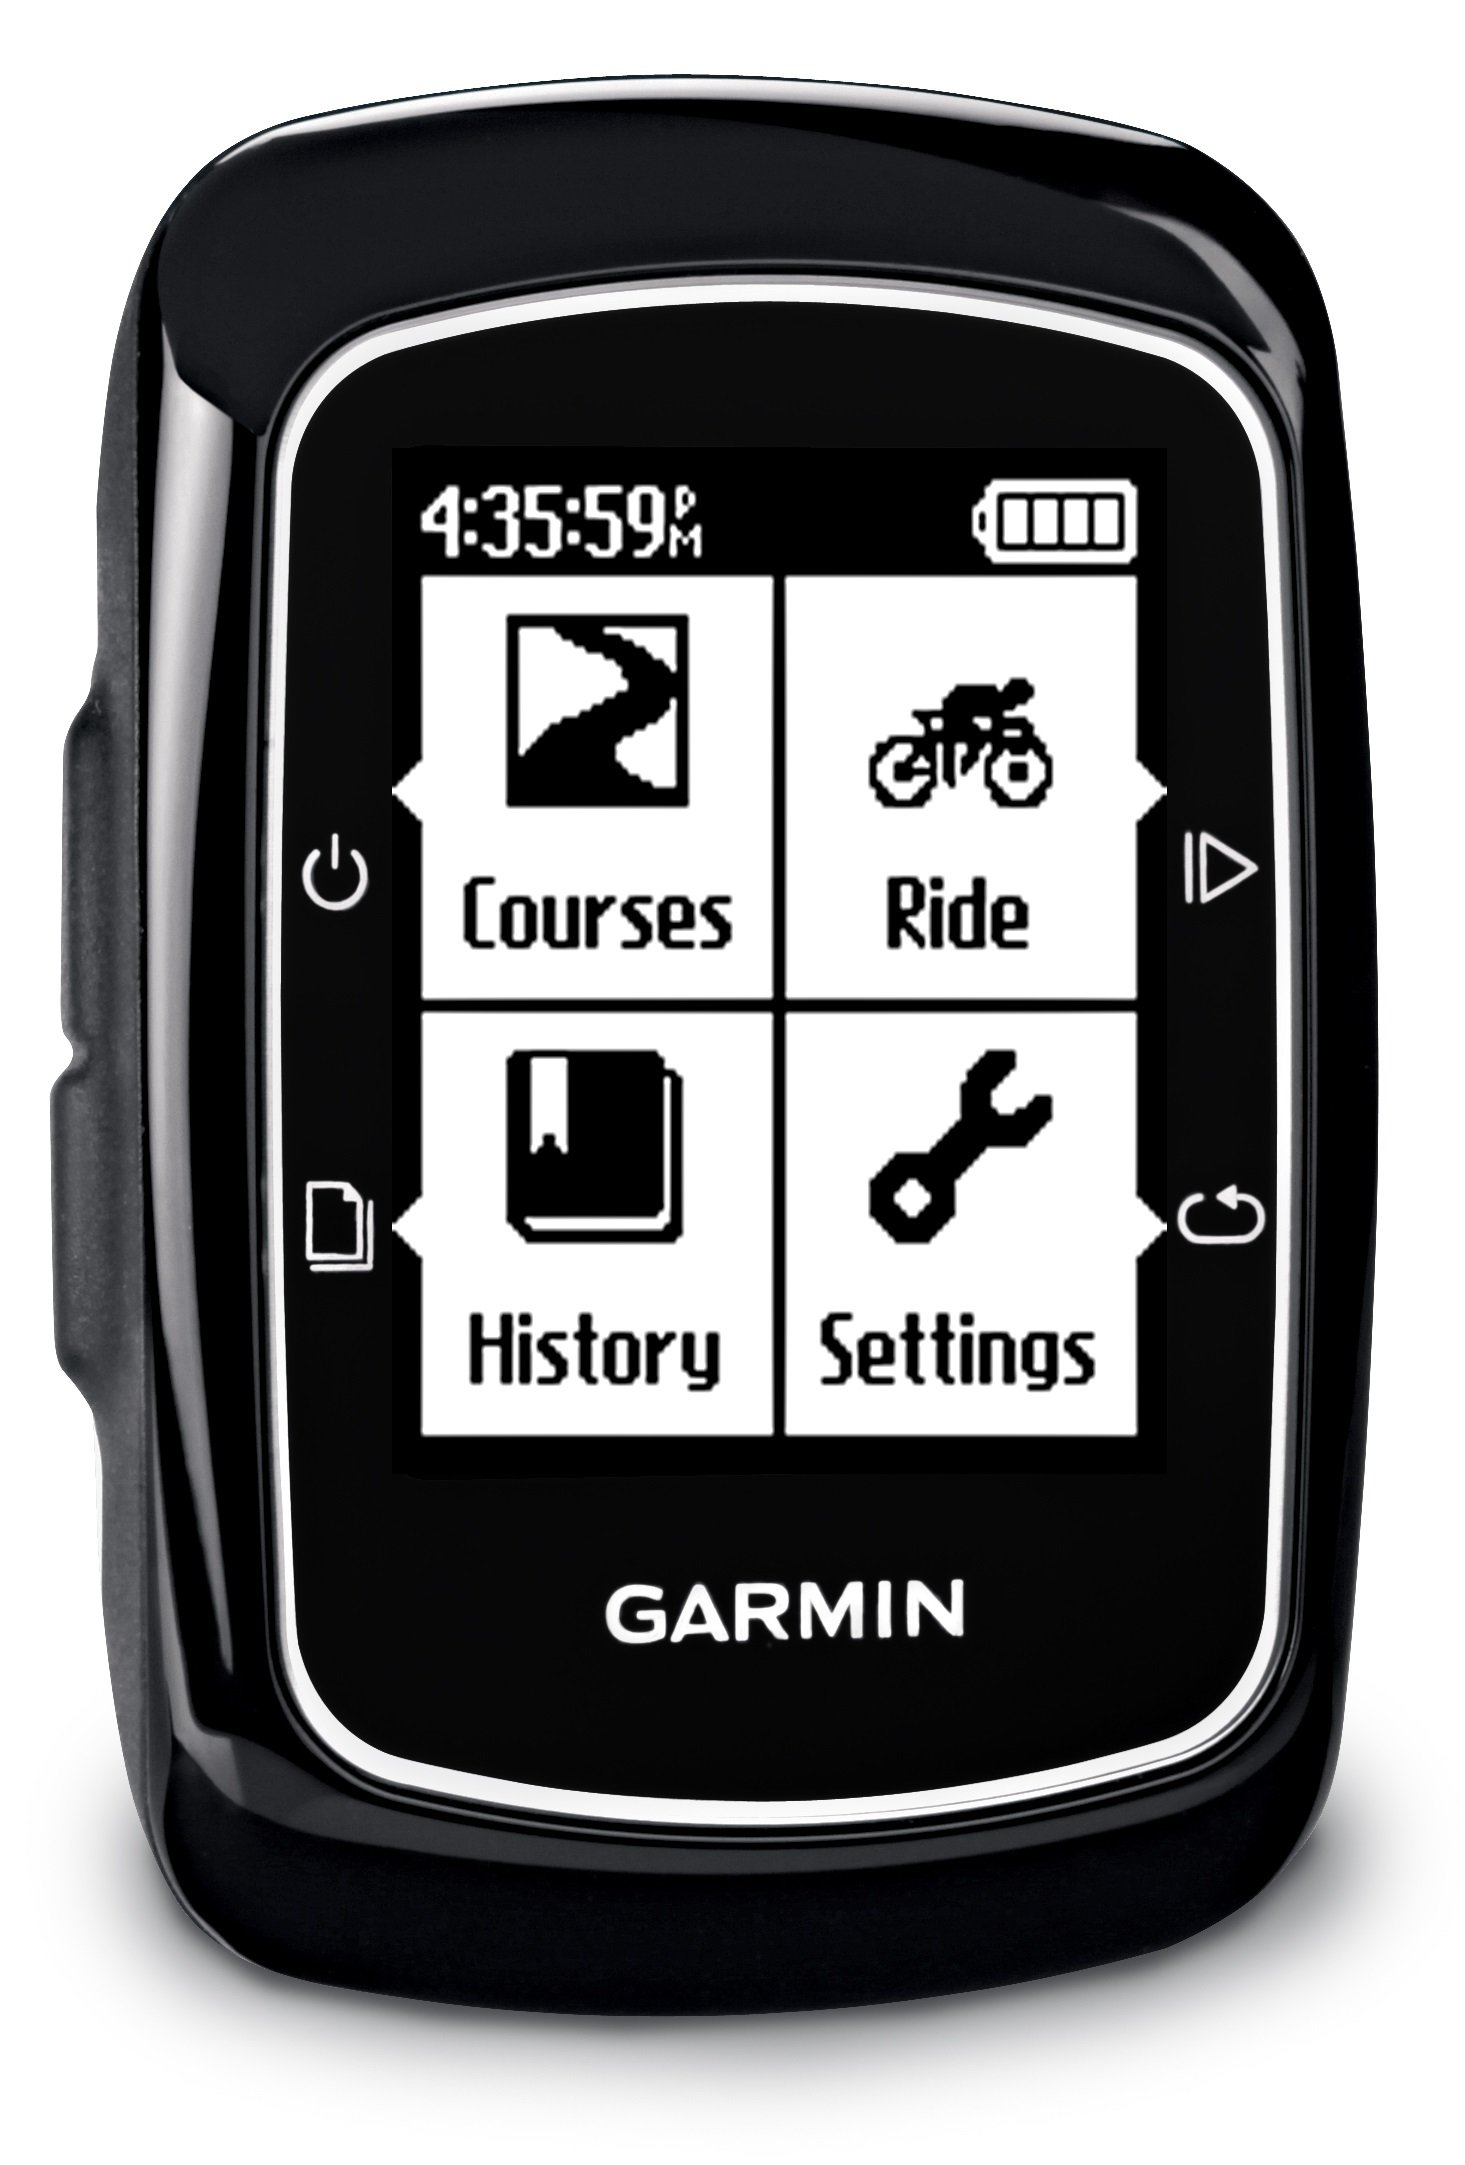 Garmin Edge 200 GPS Bike Computer - Black product image